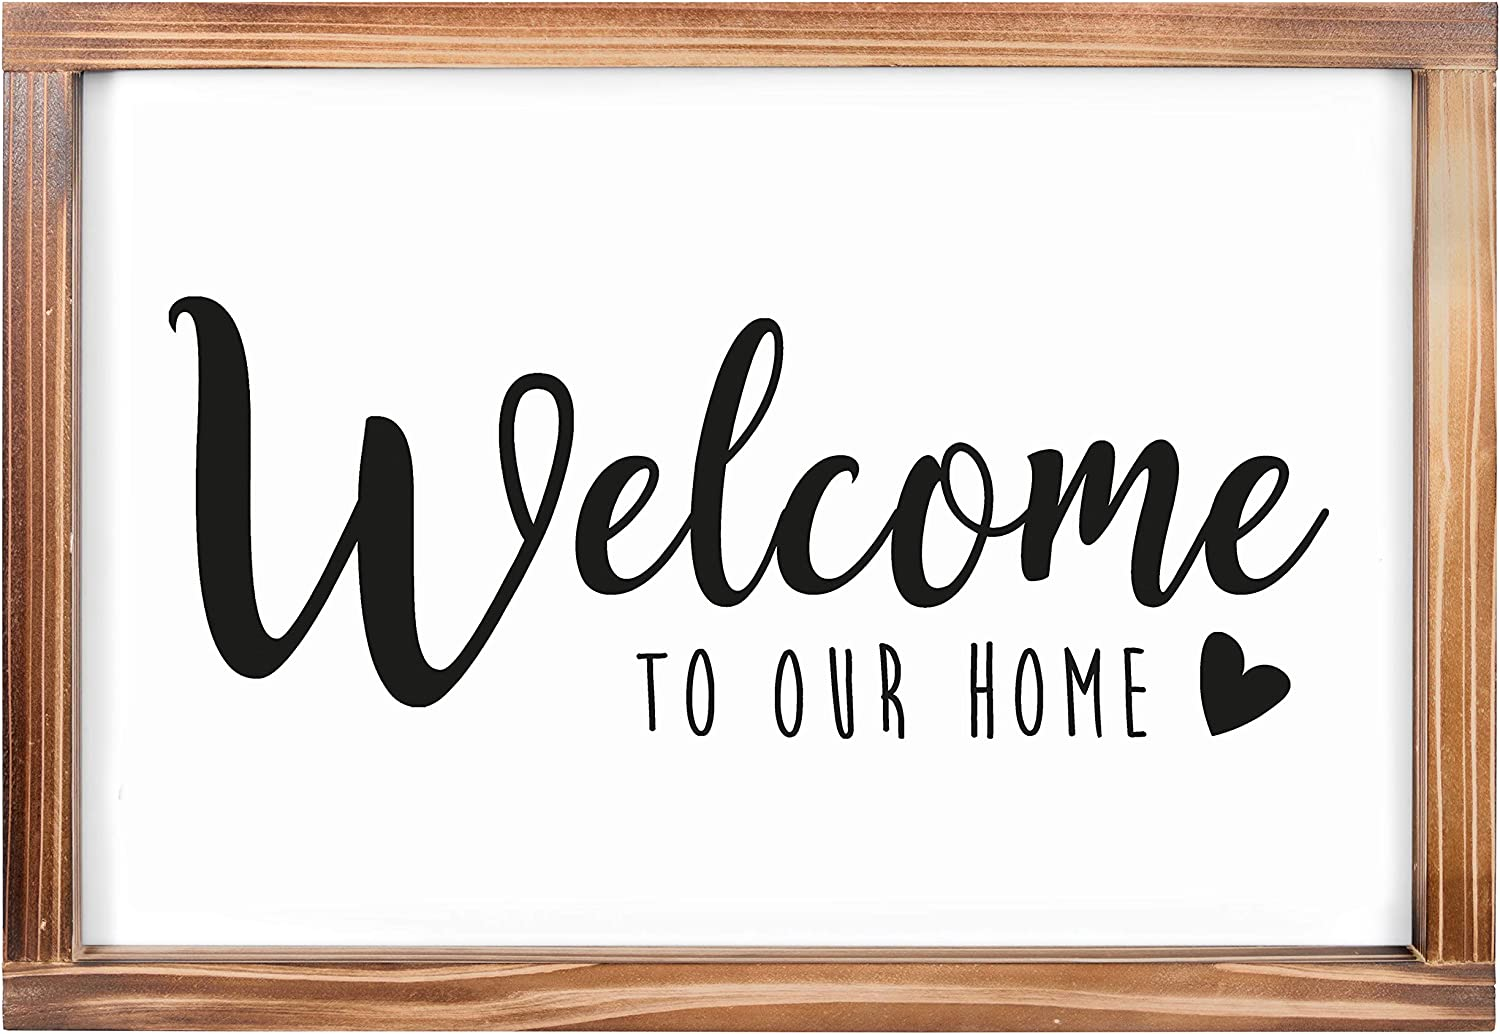 Welcome to Our Home Sign -Rustic Farmhouse Decor for the Home Sign - Wall Decorations for Living Room, Modern Farmhouse Wall Decor, Rustic Wall Hanging Welcome Sign with Solid Wood Frame -11x16 inches